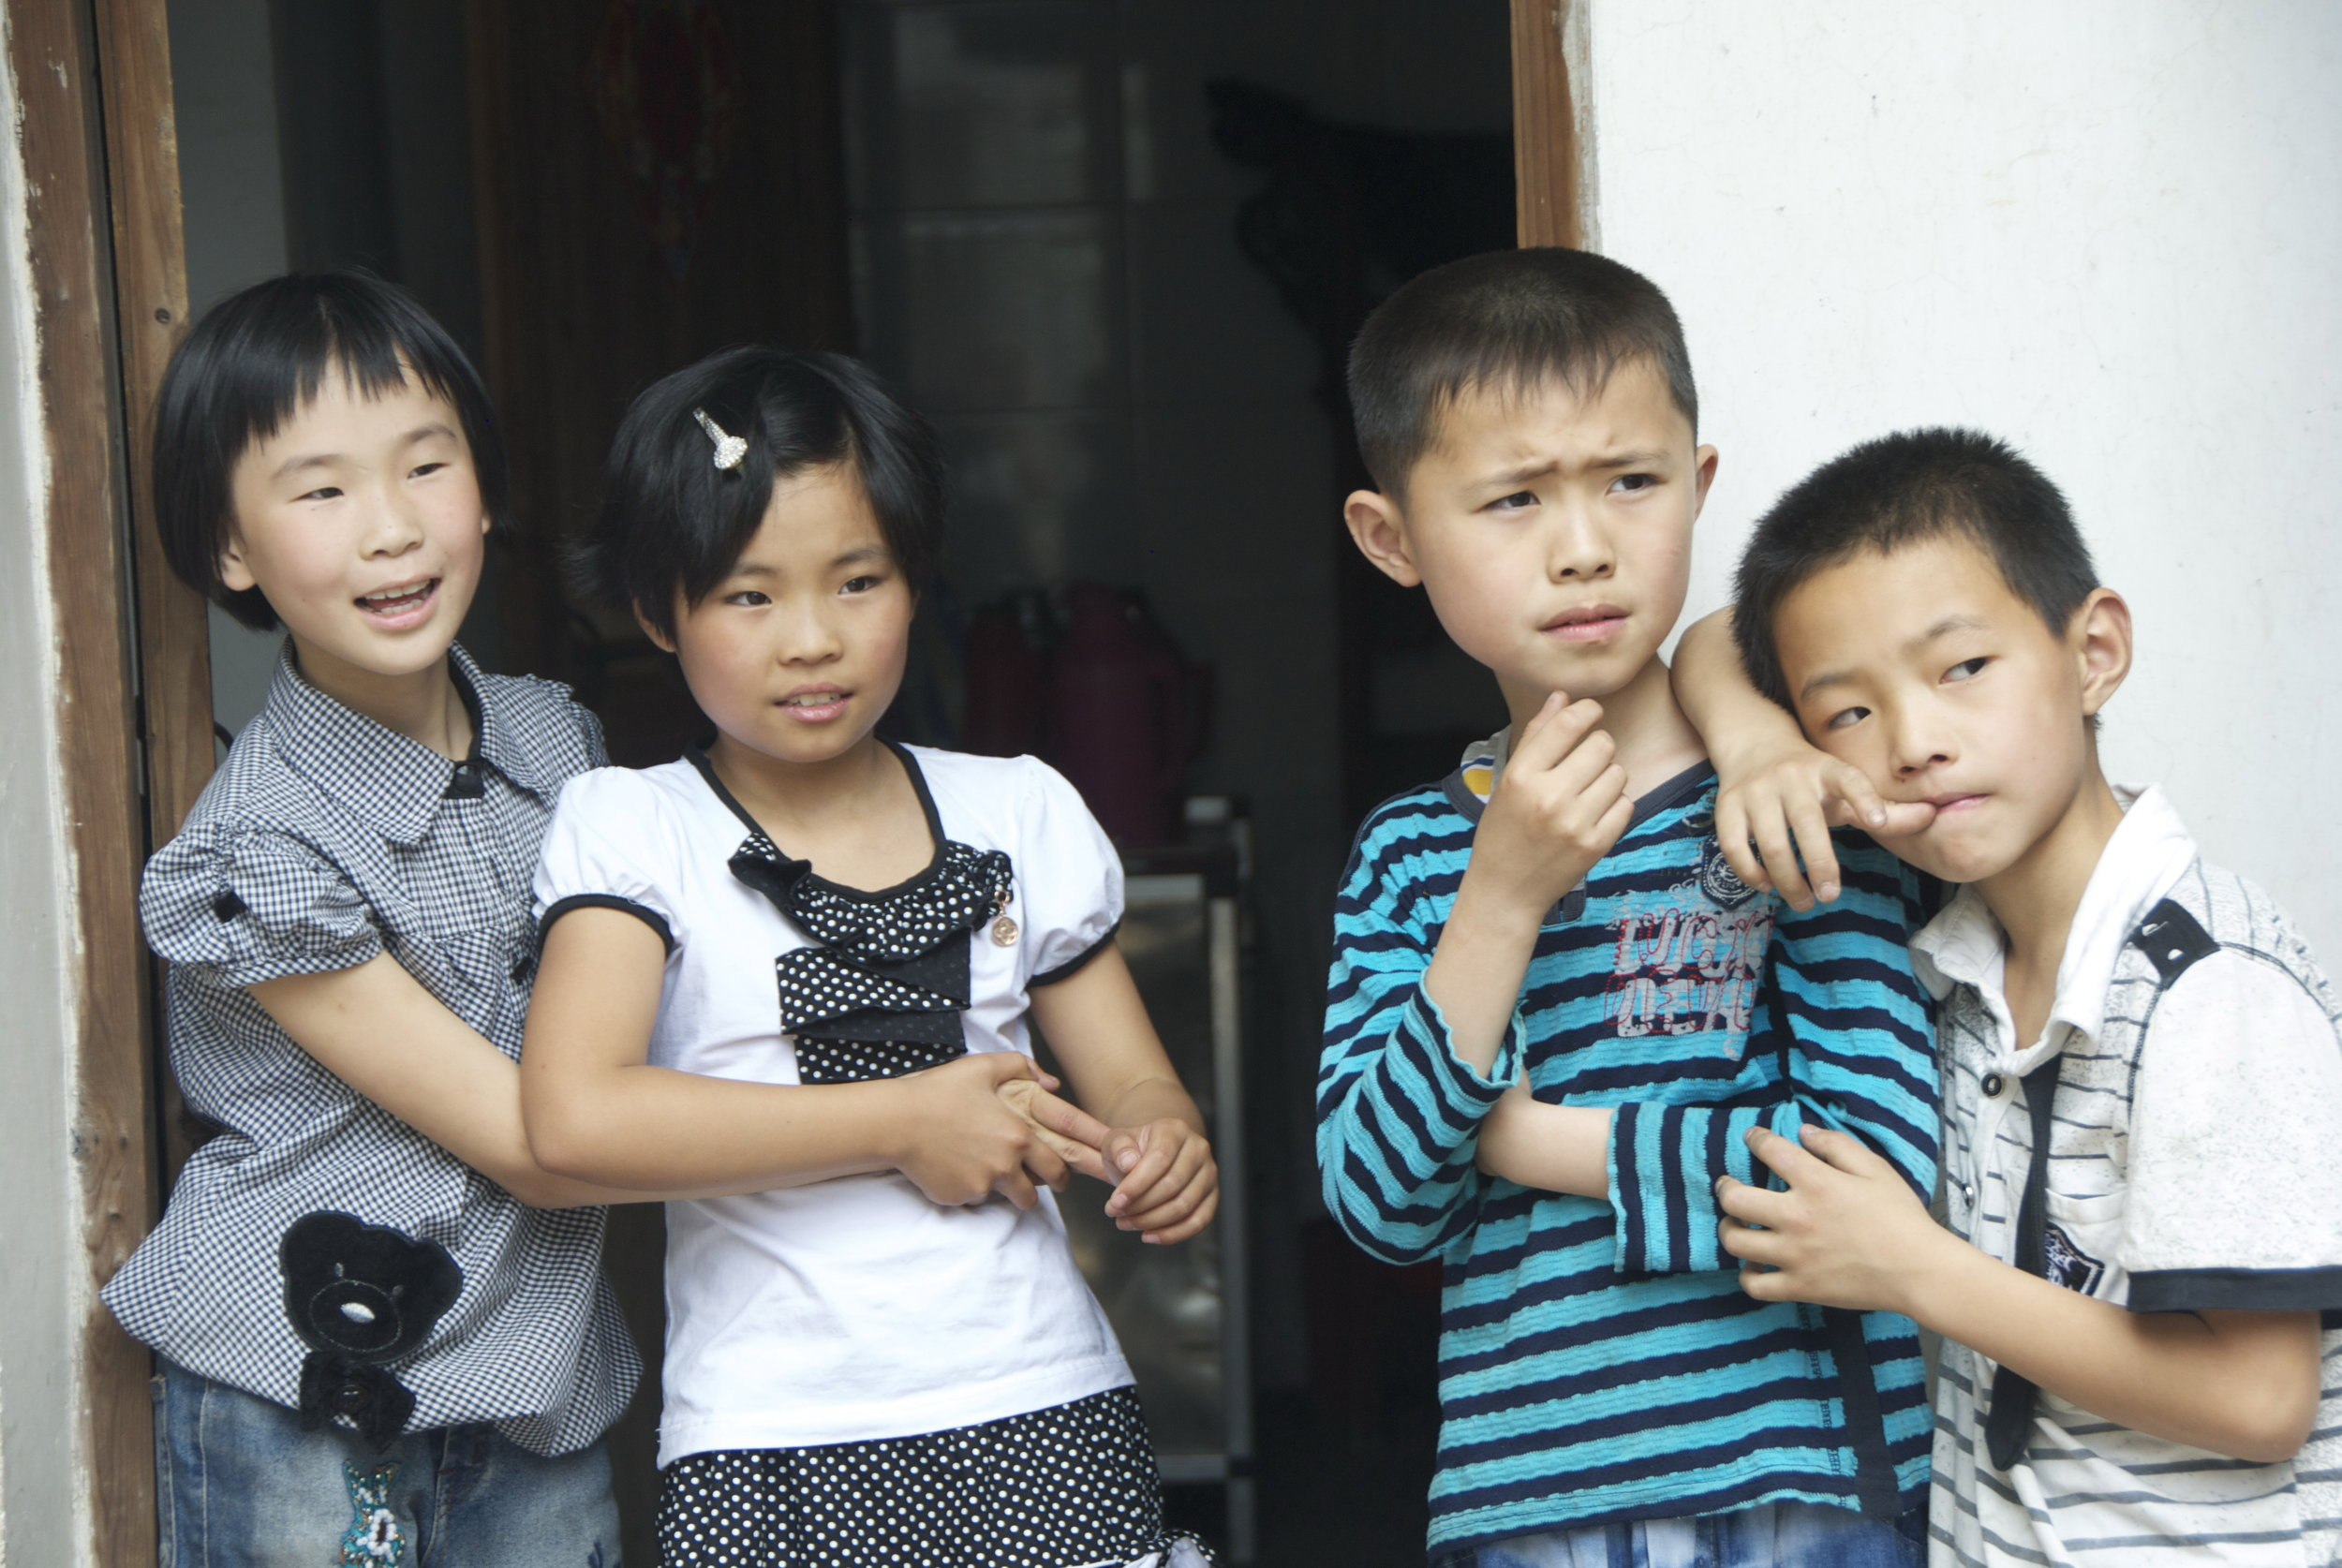 China kids doorway.jpg